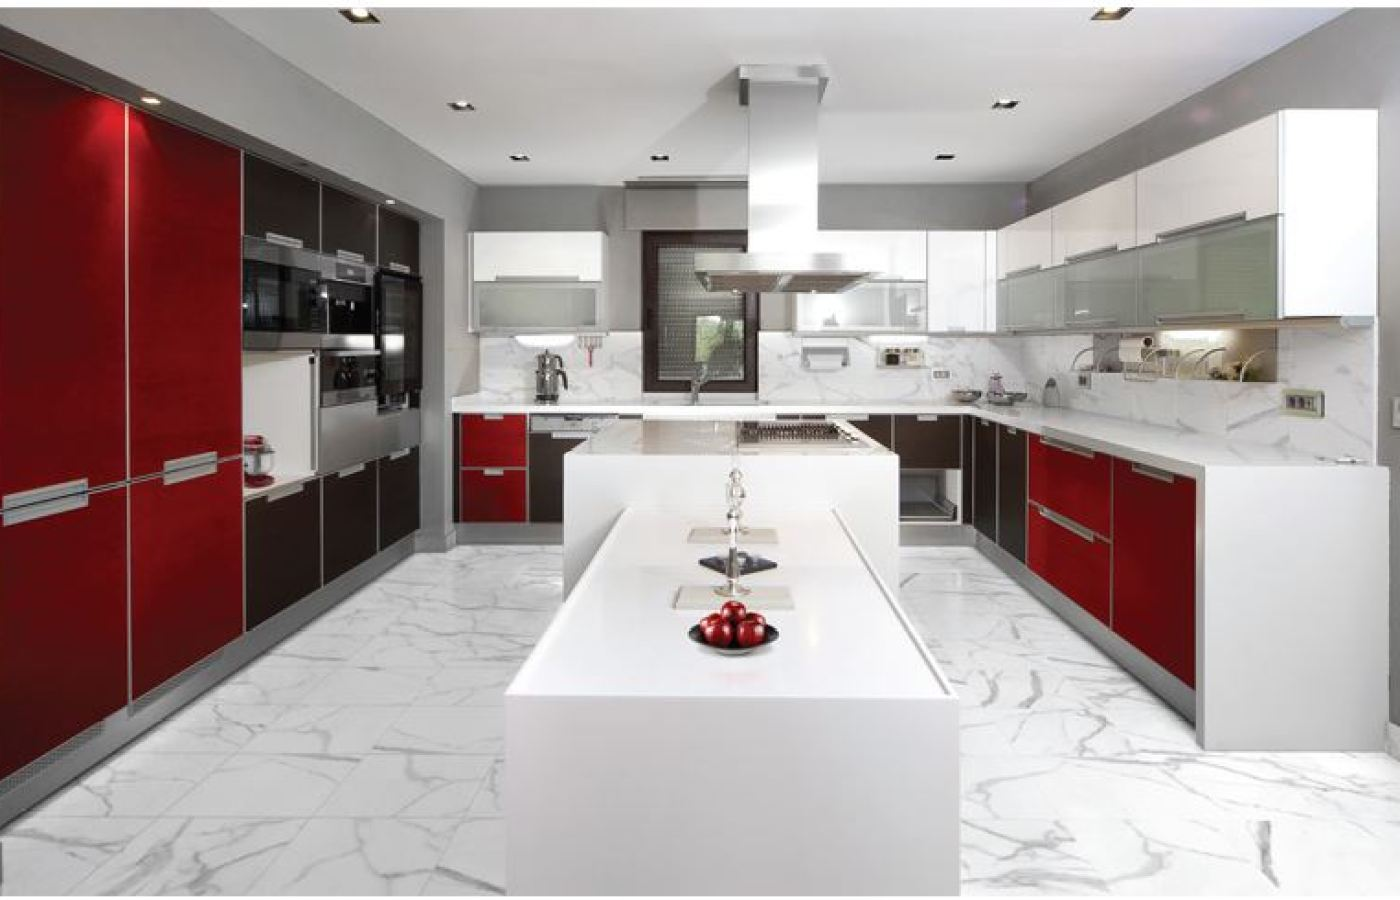 Slab Marble Tile available at Custom Home Interiors!